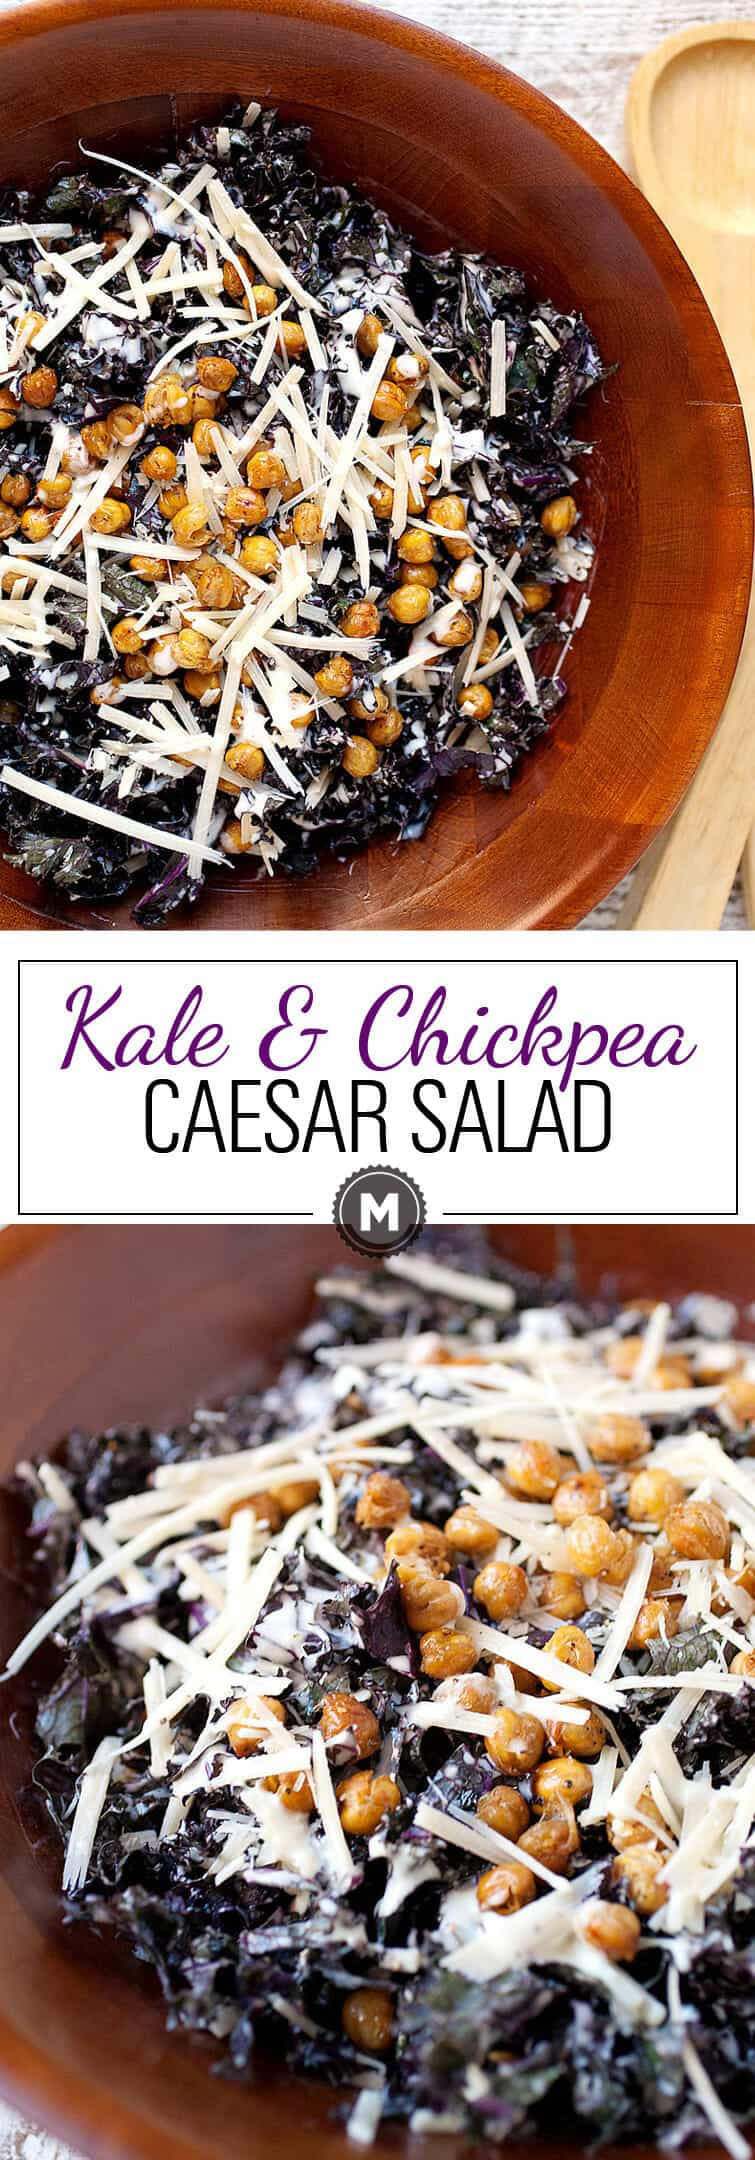 Kale Chickpea Caesar Salad: This salad is all about simple and tasty veggies. Purple kale lightly tossed in a homemade caesar salad dressing (no anchovies in this version). Roasted, crispy chickpeas take the place of croutons! I love this salad in the winter! | macheesmo.com